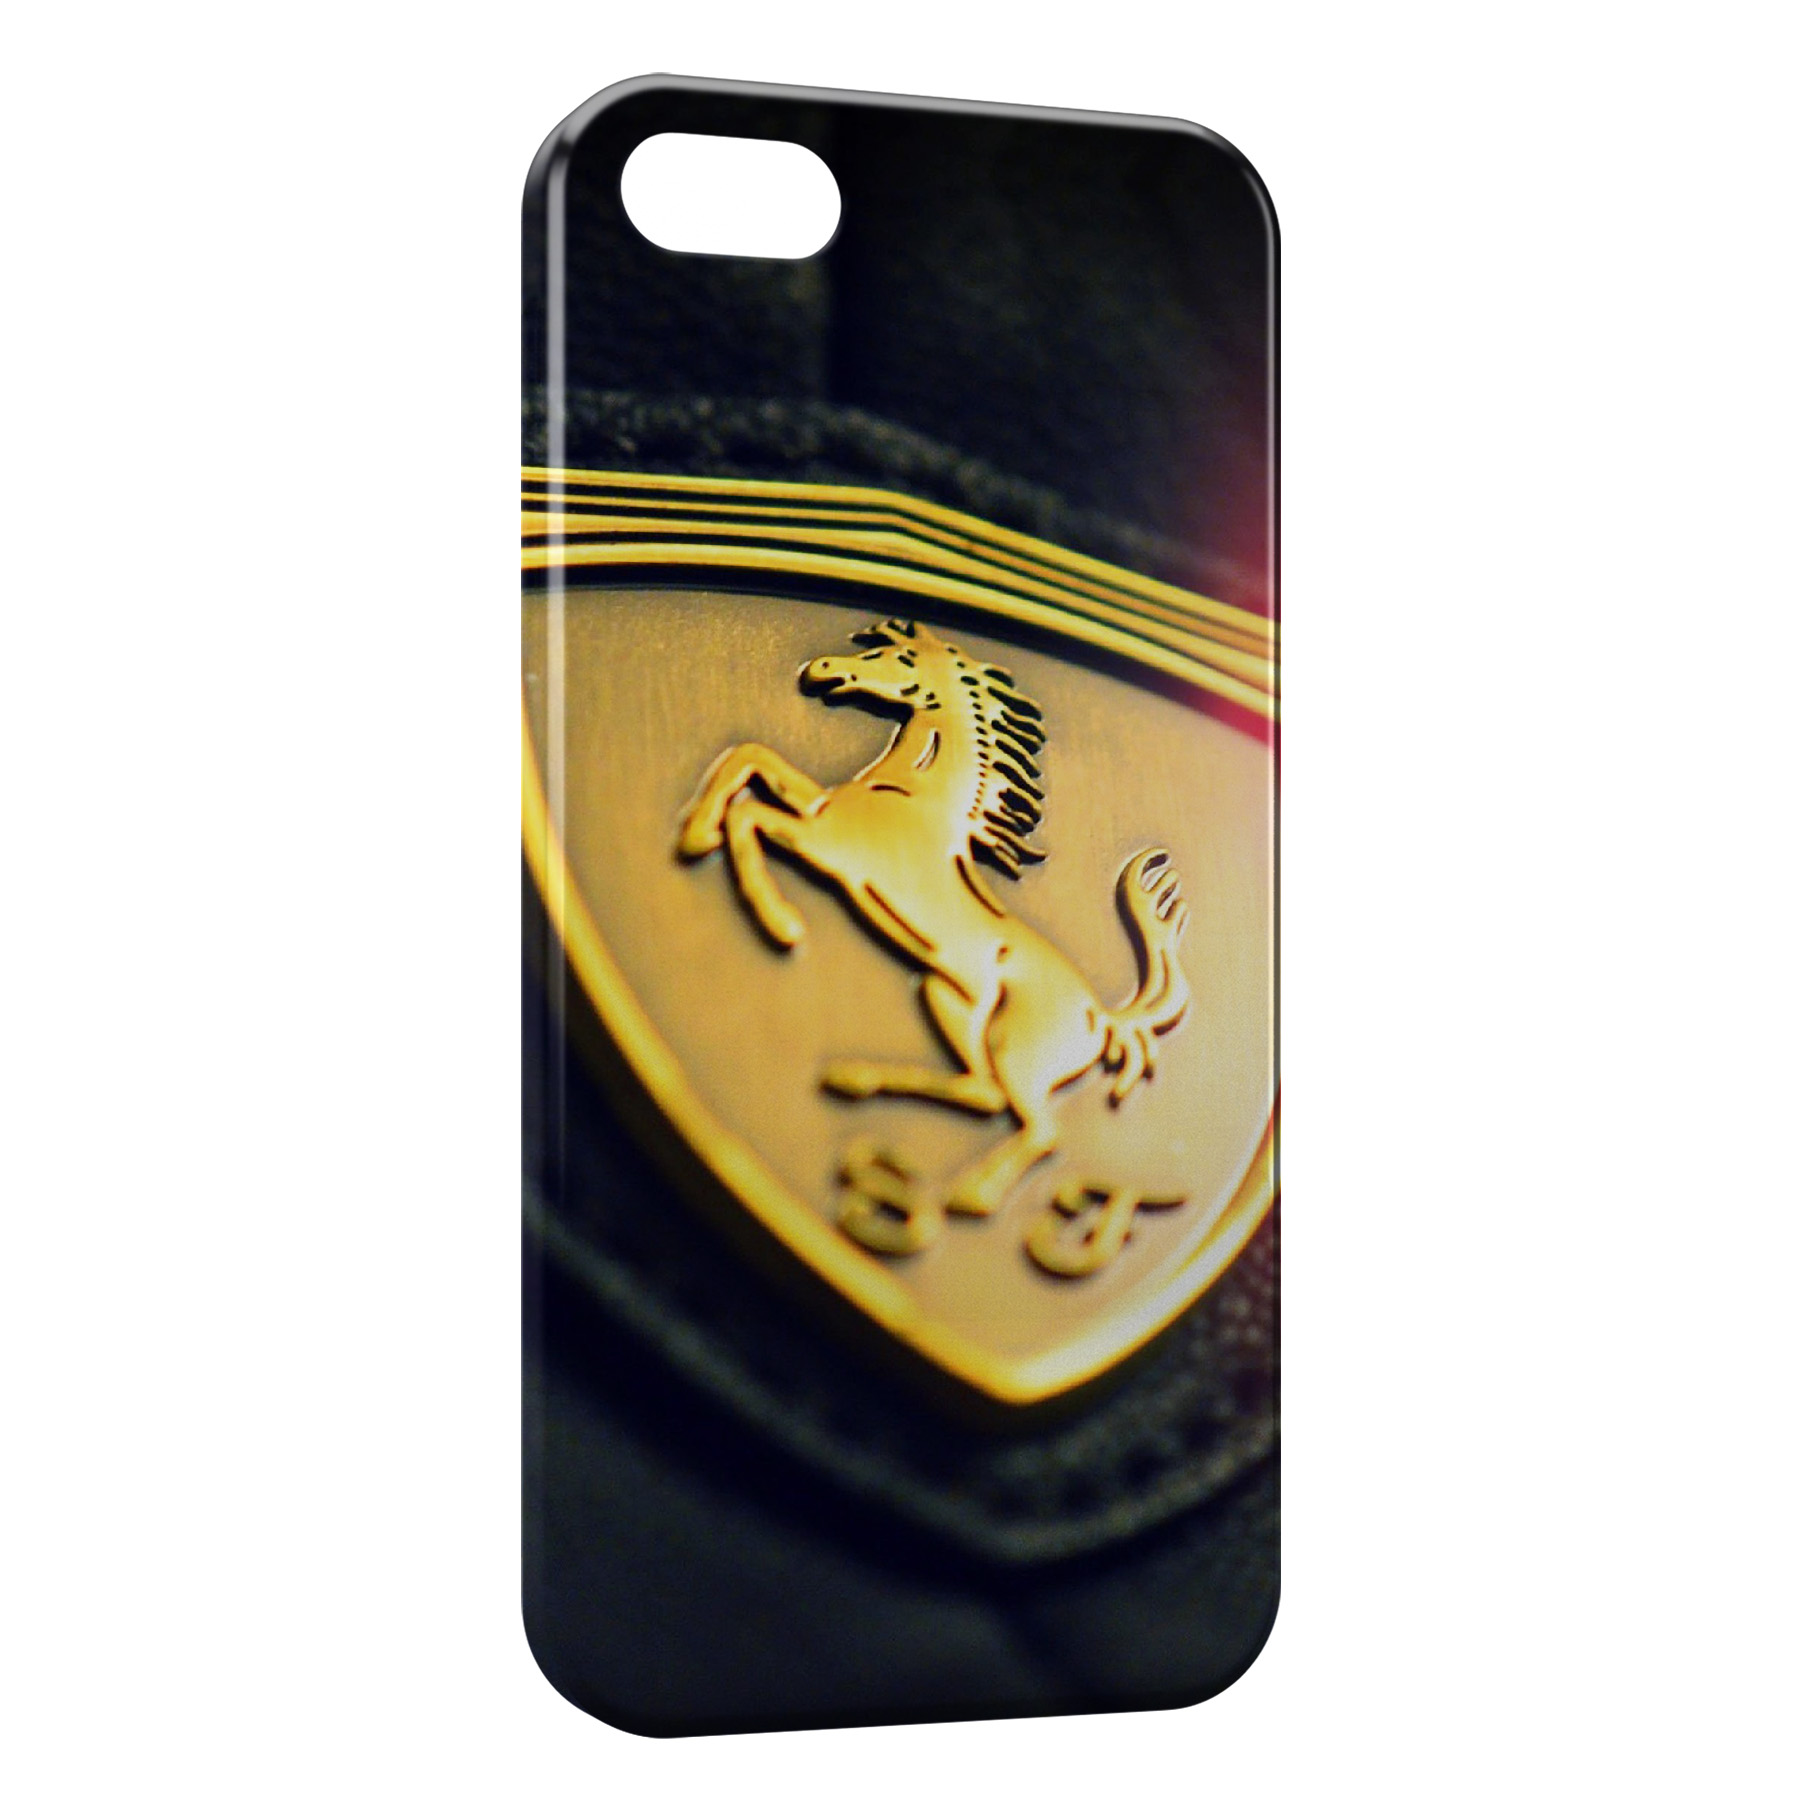 Coque iPhone 8 8 Plus Ferrari Logo Design Voiture 3